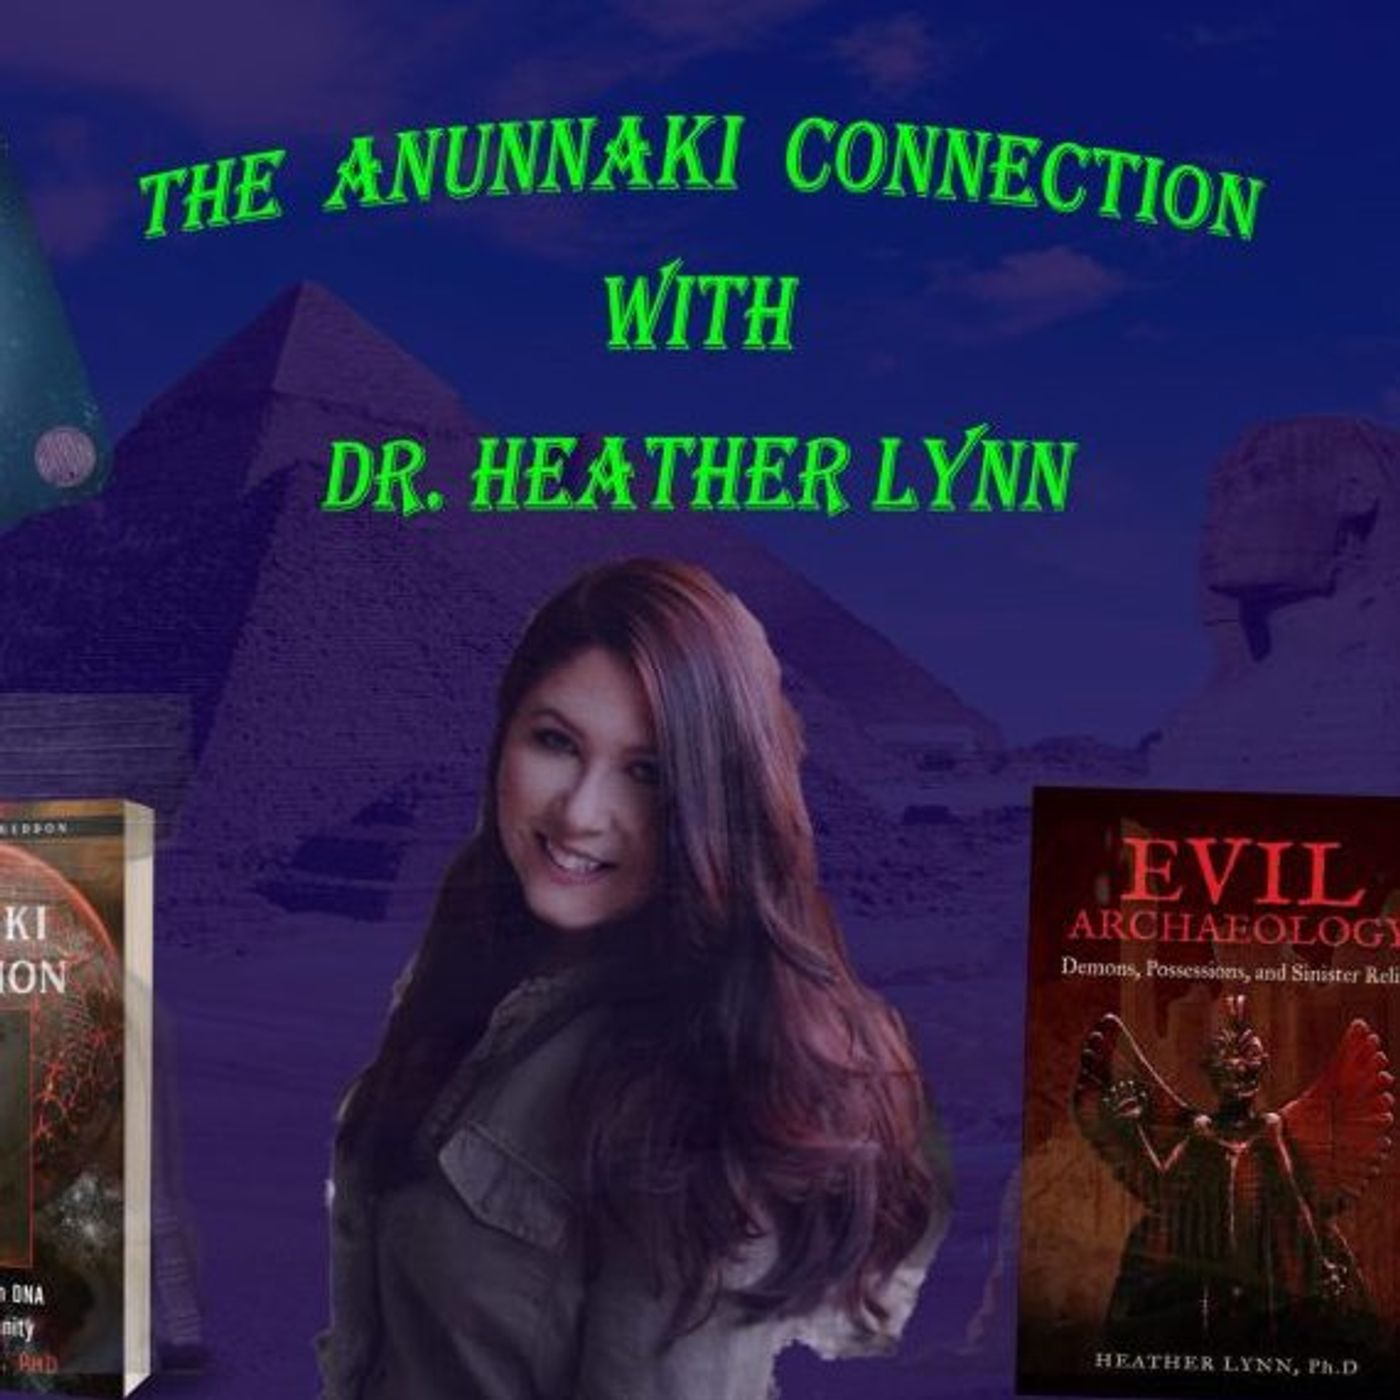 The Anunnaki Connection with Dr. Heather Lynn